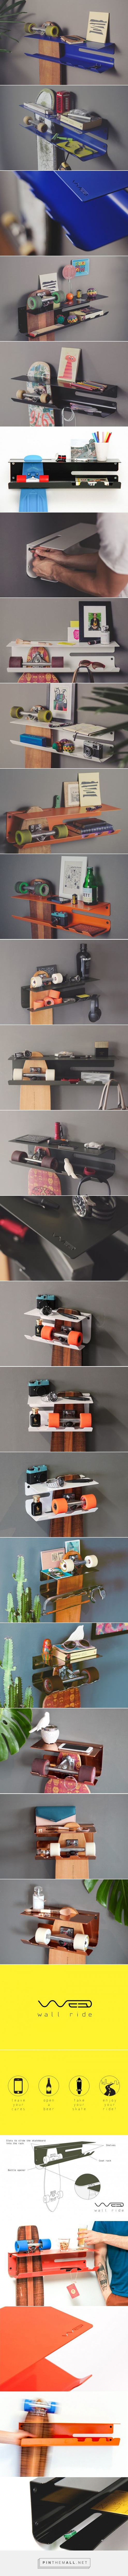 wall ride shelf allows you to proudly display your skateboard | Designboom Shop - created via https://pinthemall.net